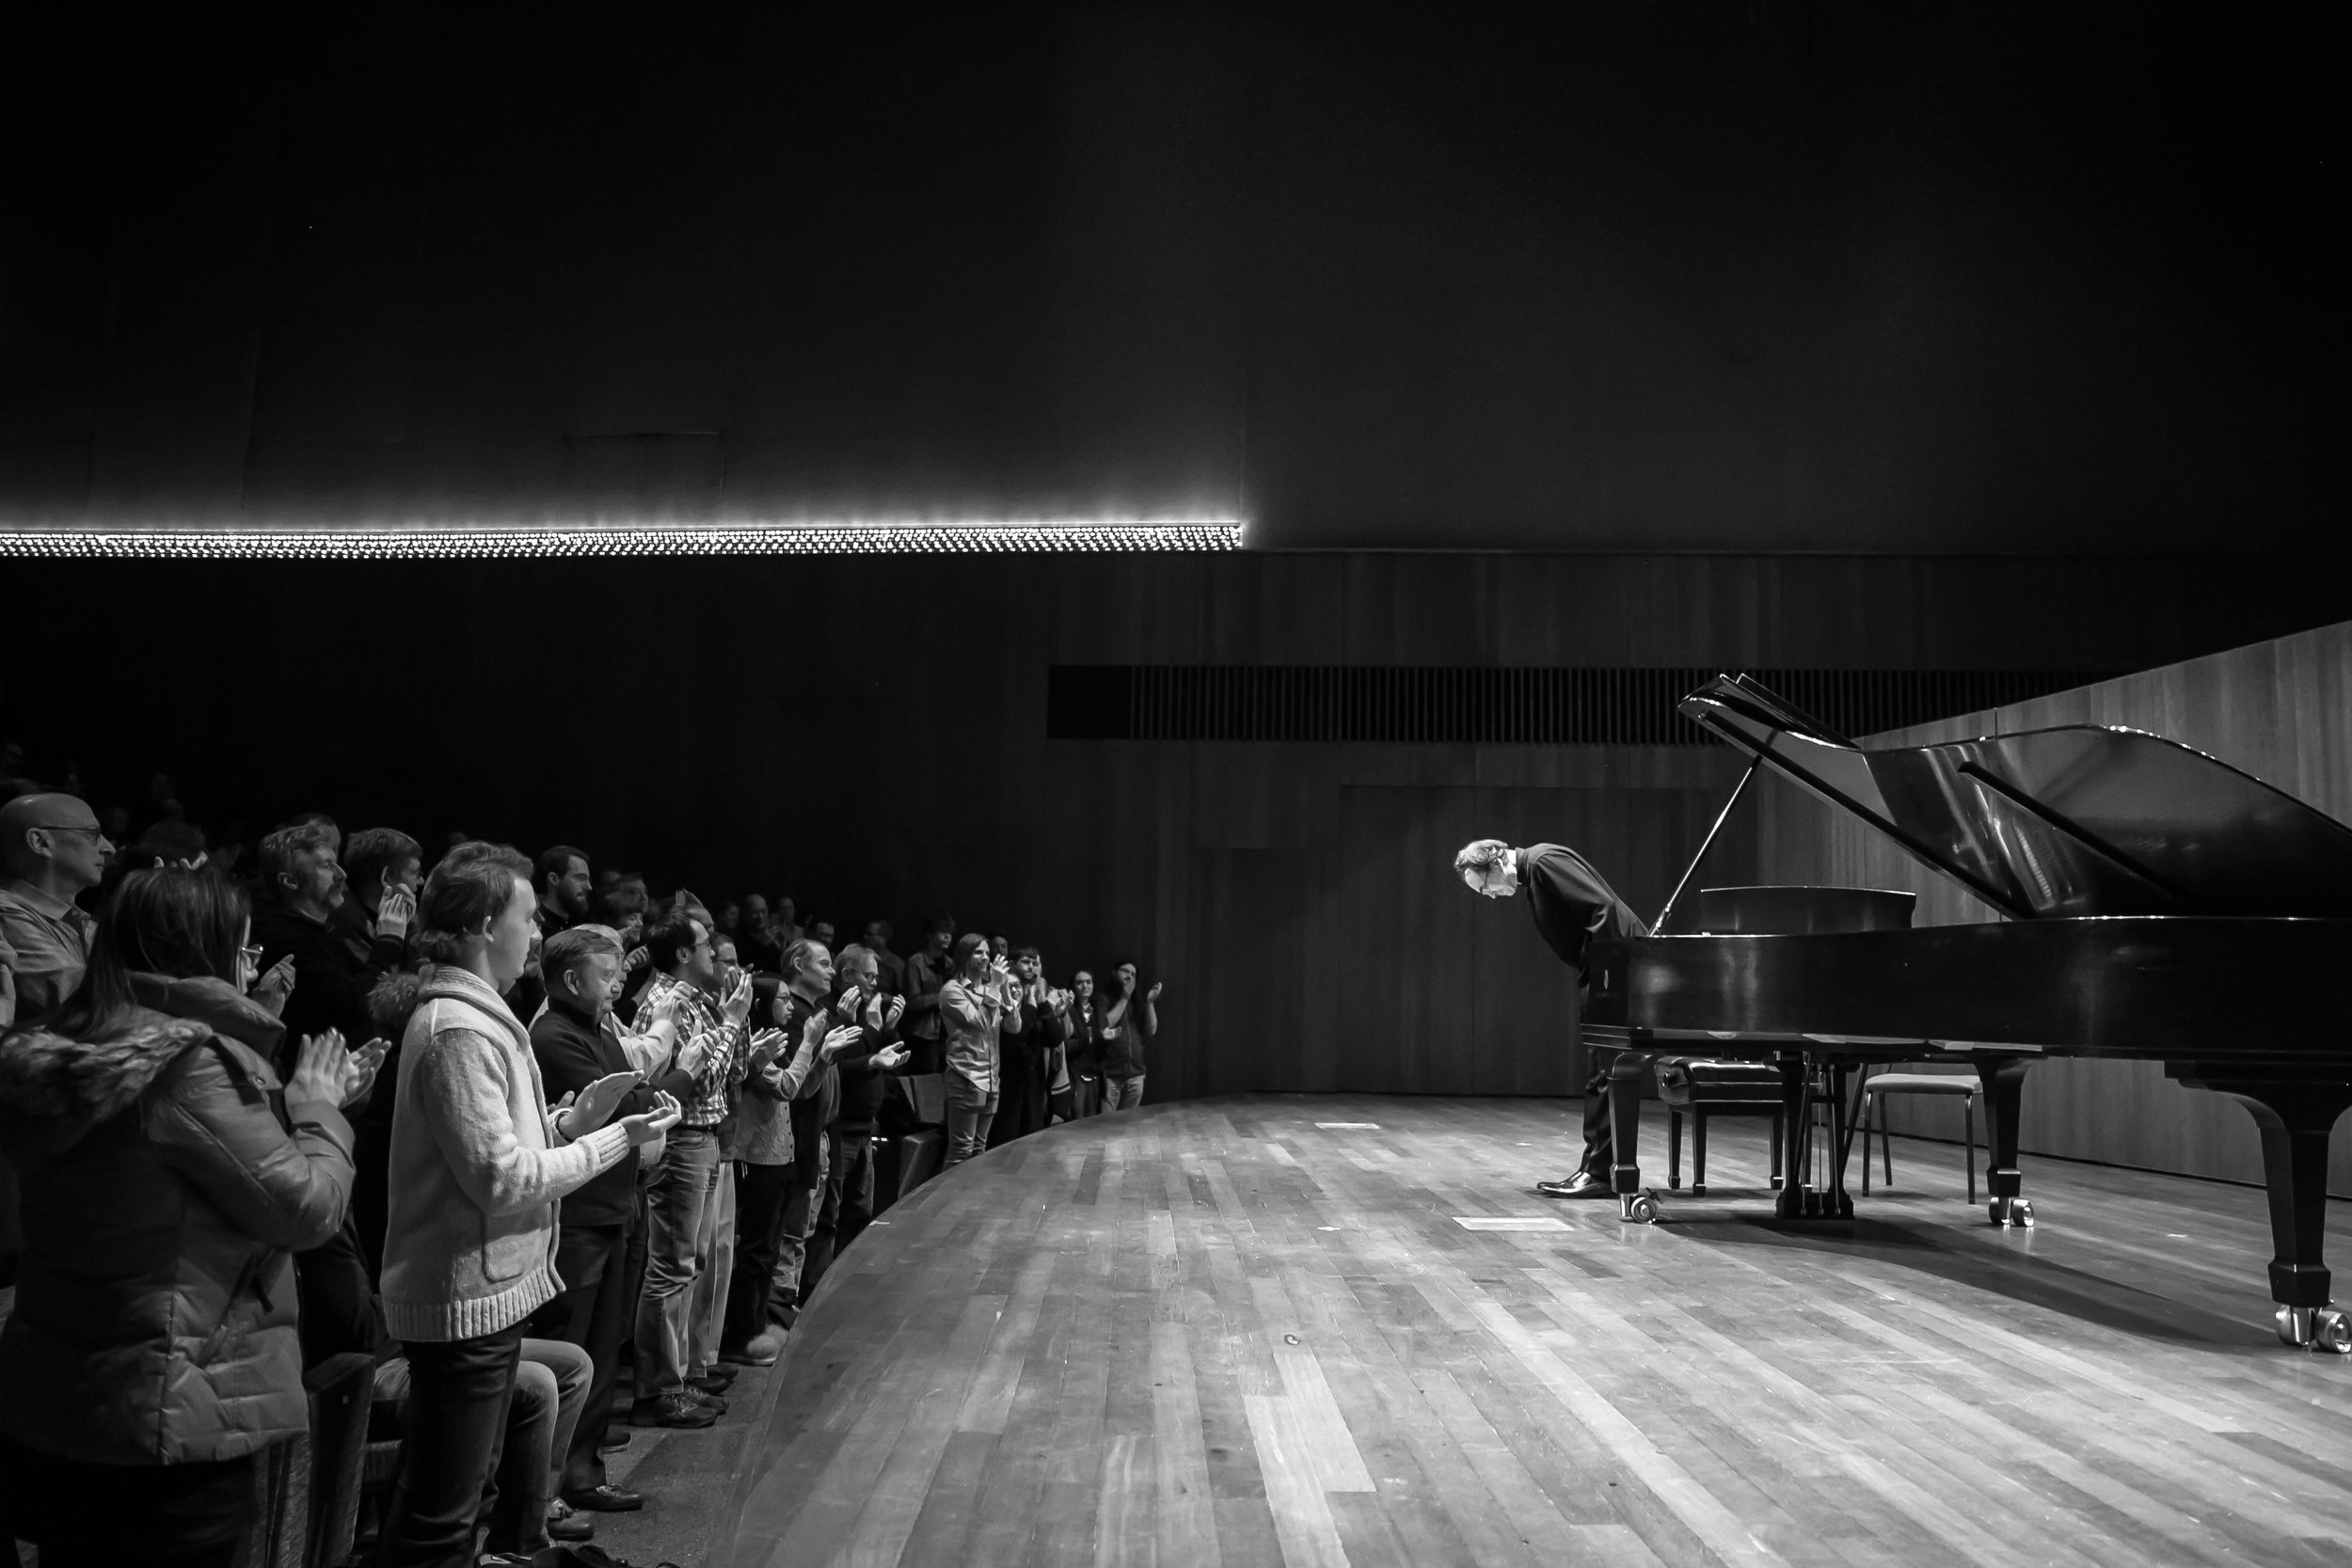 Pianist Pierre-Laurent Aimard takes a final bow after his solo recital for University of Chicago Presents, March 6, 2018.